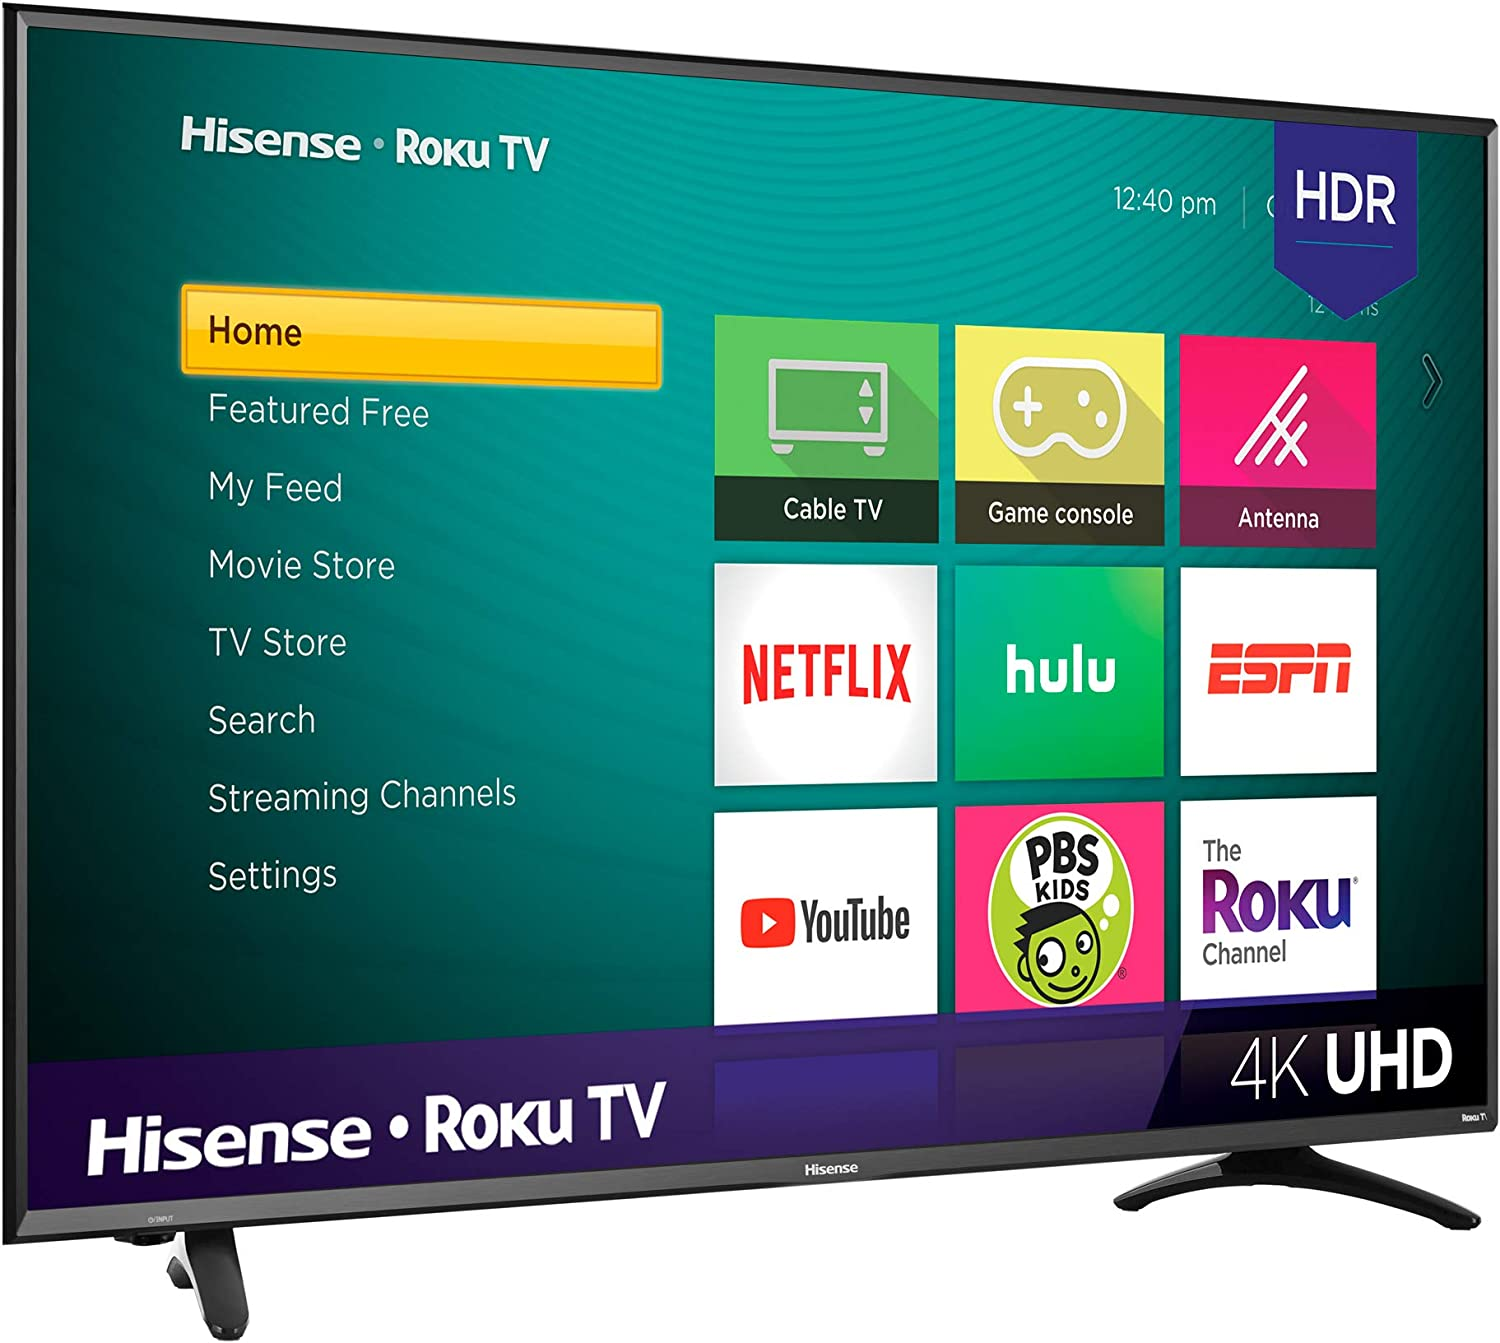 Hisense 4K Ultra HD Roku Smart LED TV HDR (2019): Amazon.es: Electrónica